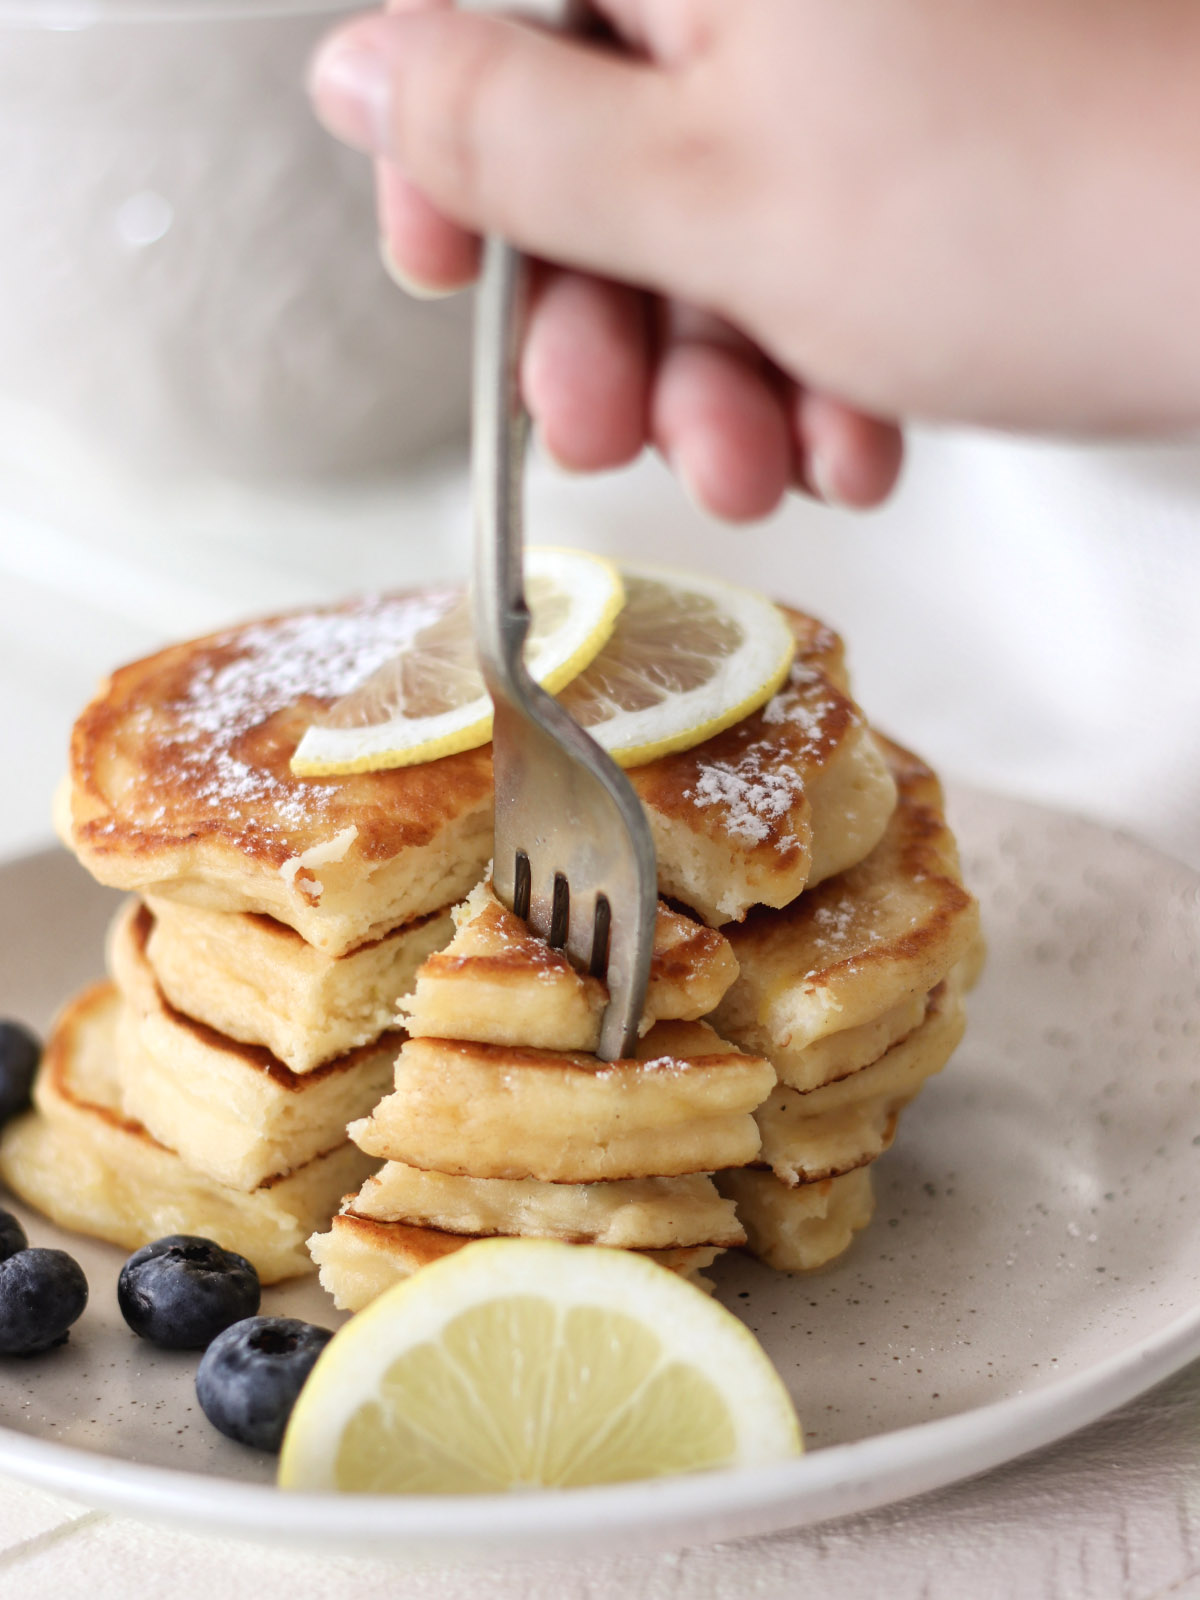 How to Make Ricotta Pancakes